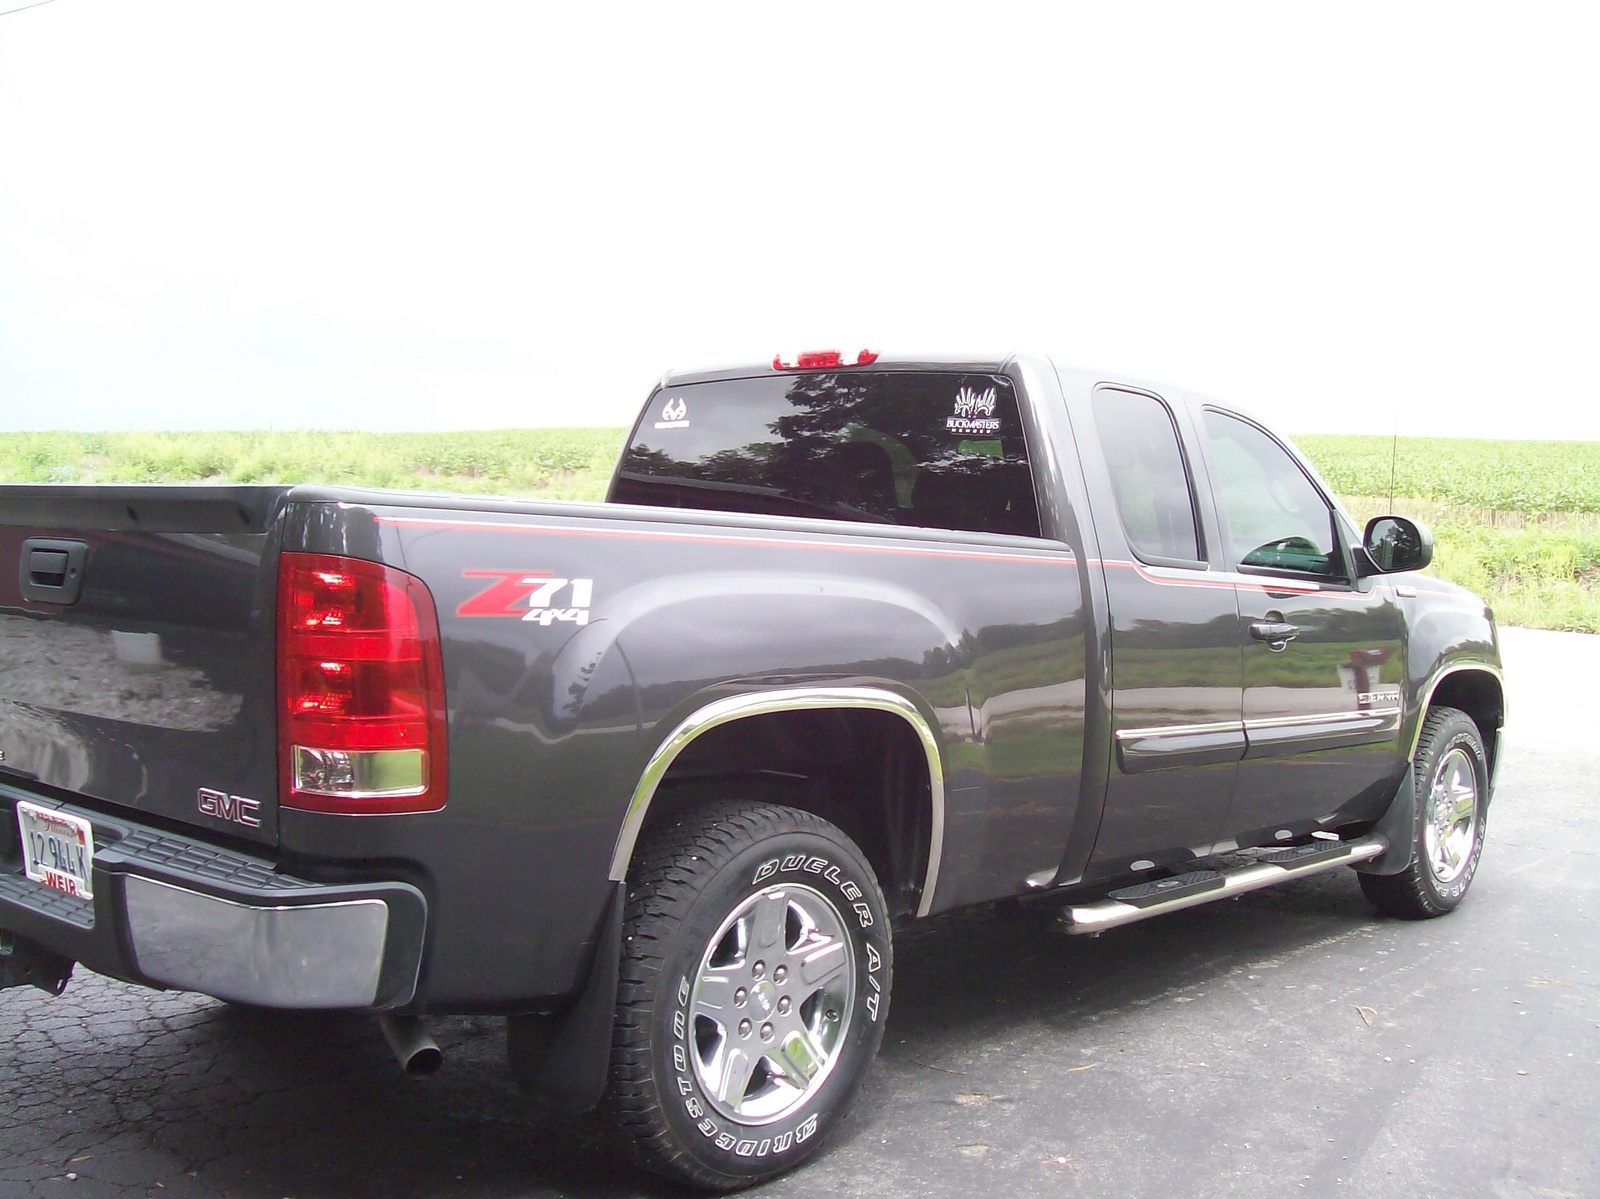 2011 gmc sierra 1500 pictures cargurus. Black Bedroom Furniture Sets. Home Design Ideas